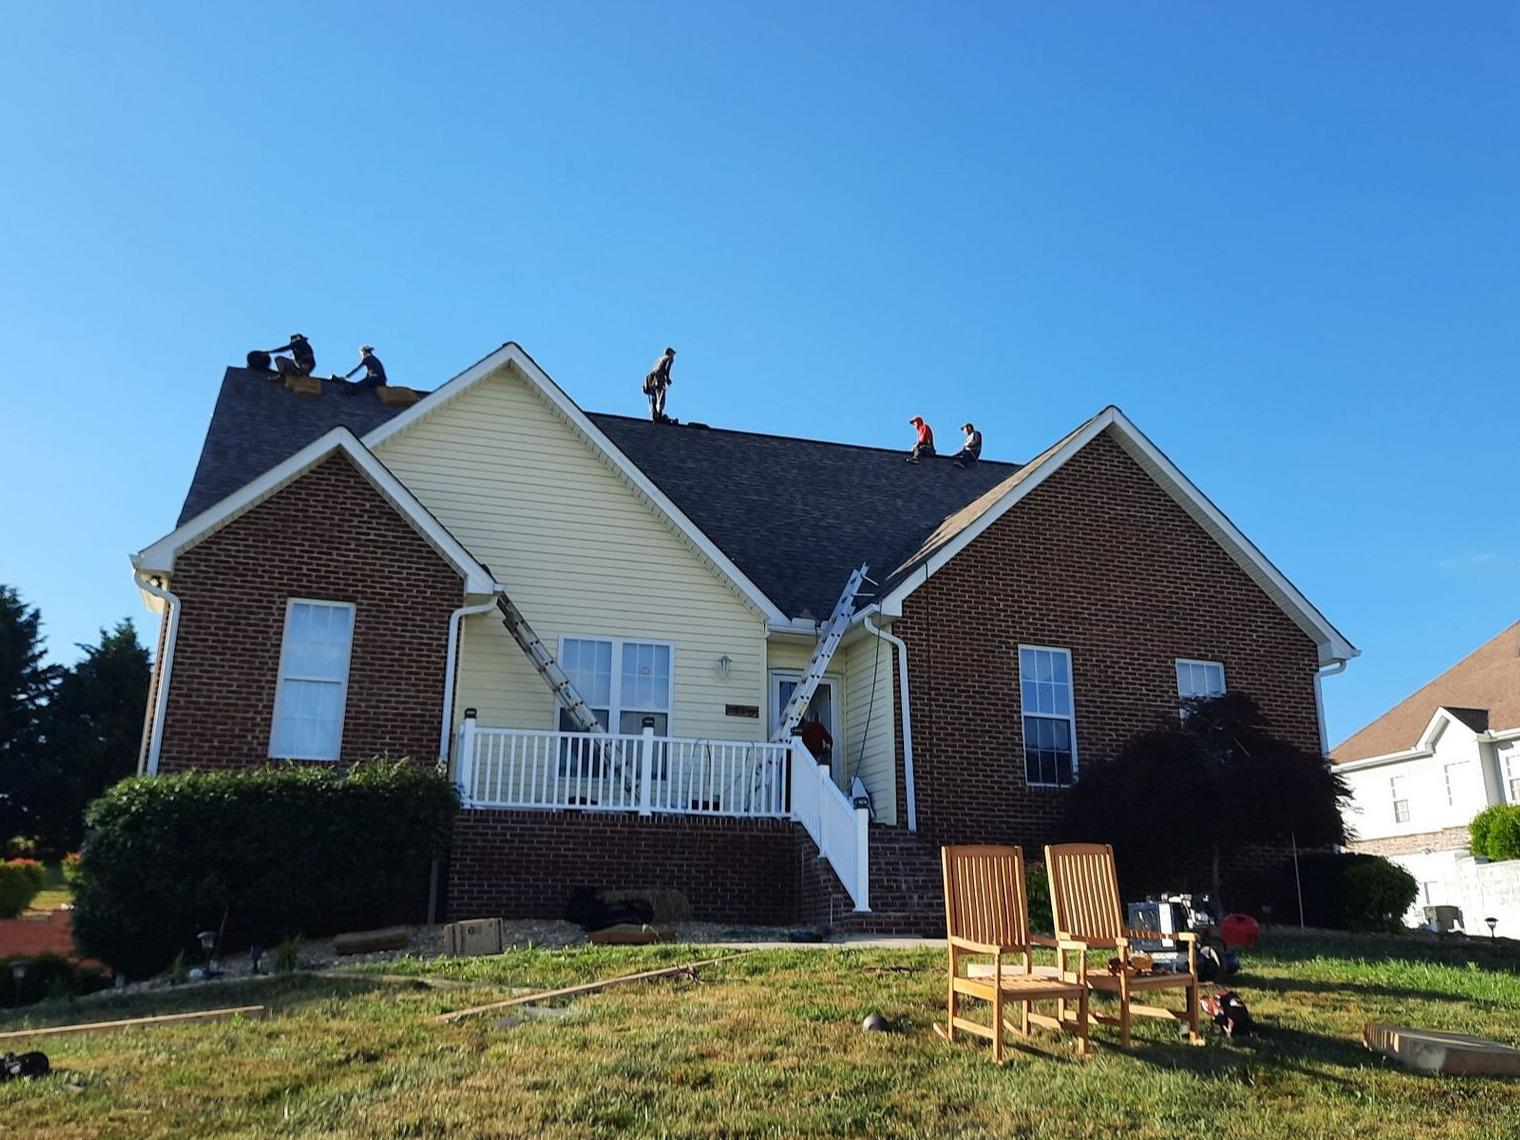 Roof Replacement Near Cumberland Gap, TN - After Photo